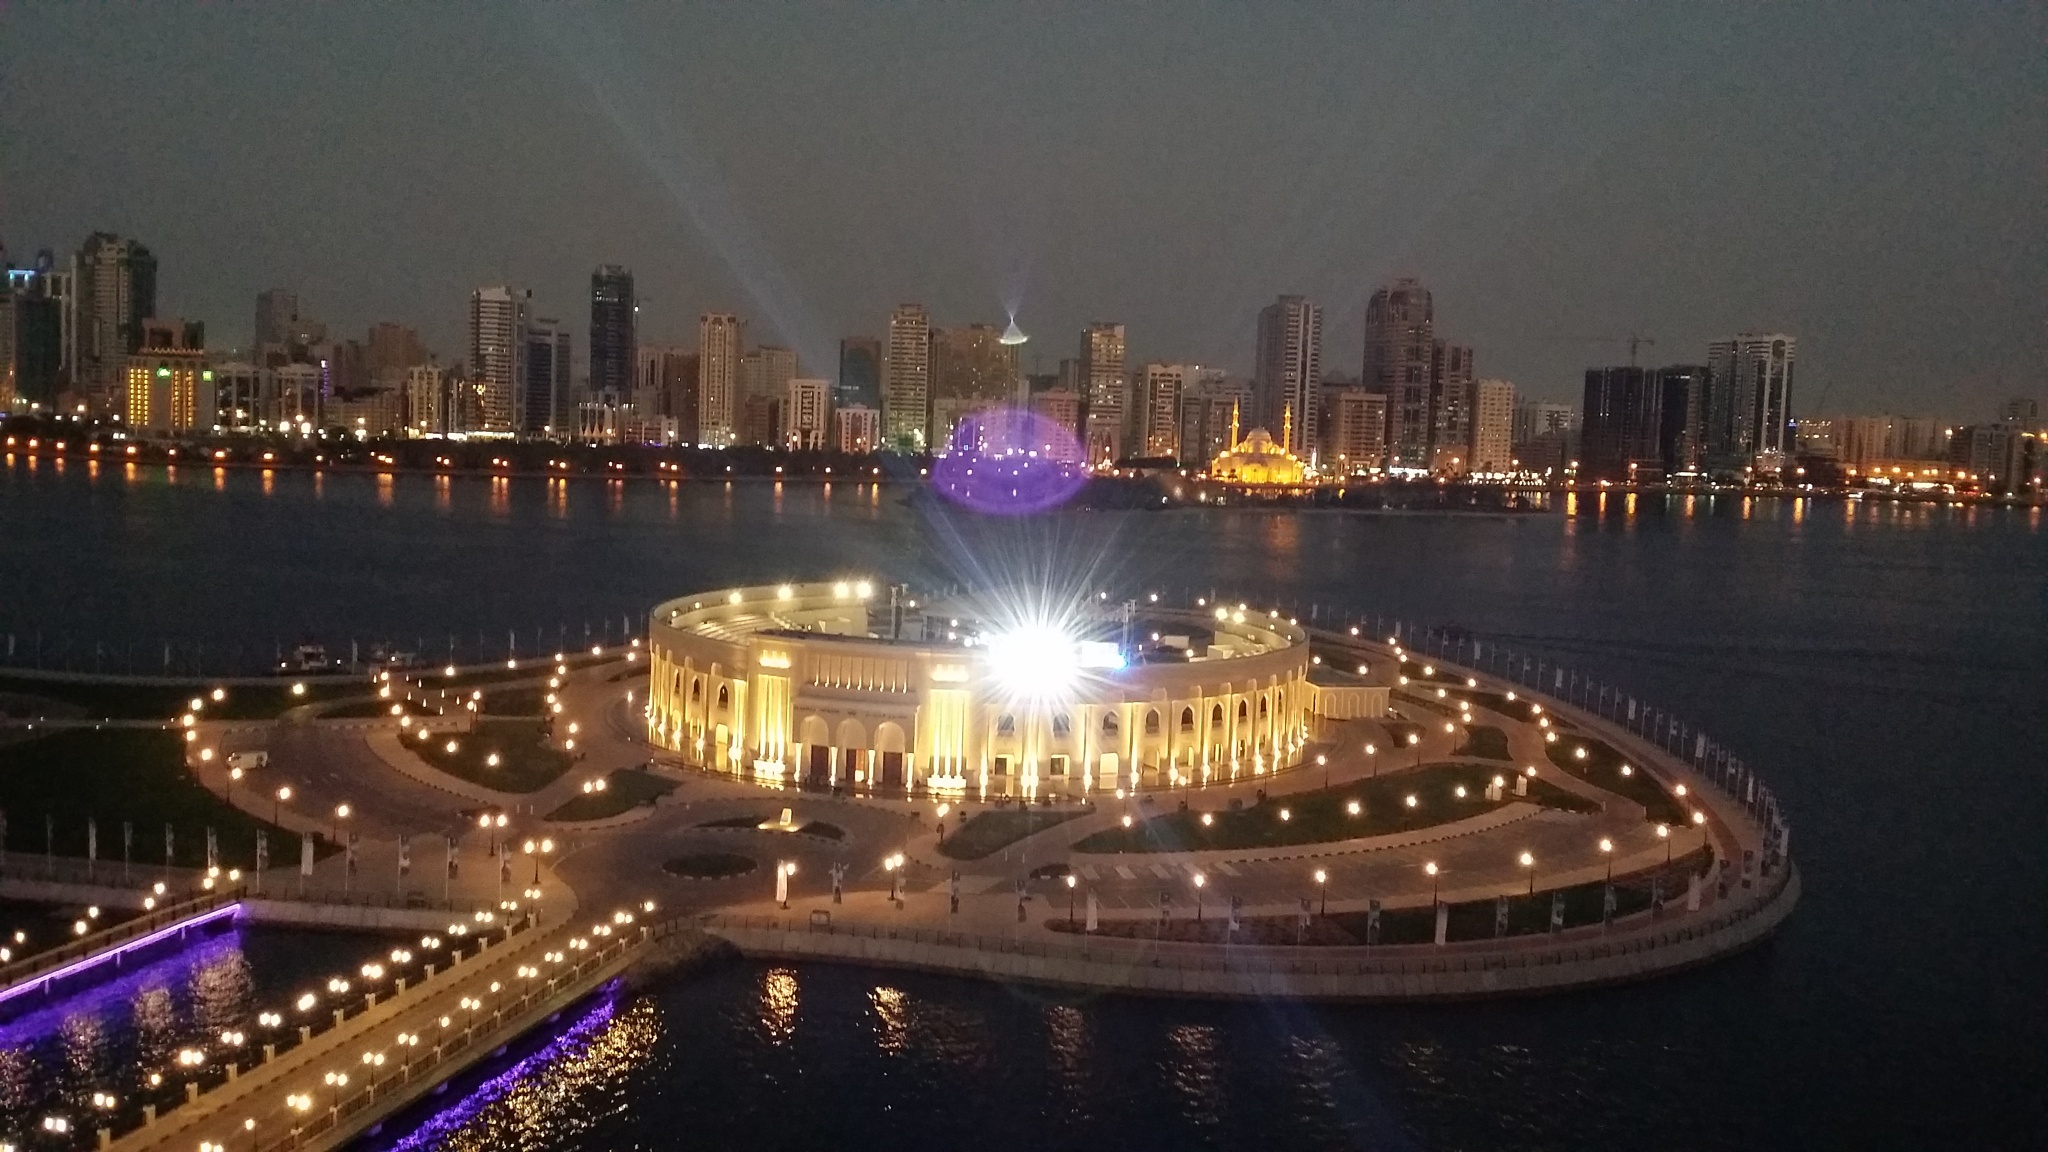 In the evening  the Almajaz Theater #Sharjah  by Maysoon Ghnaim